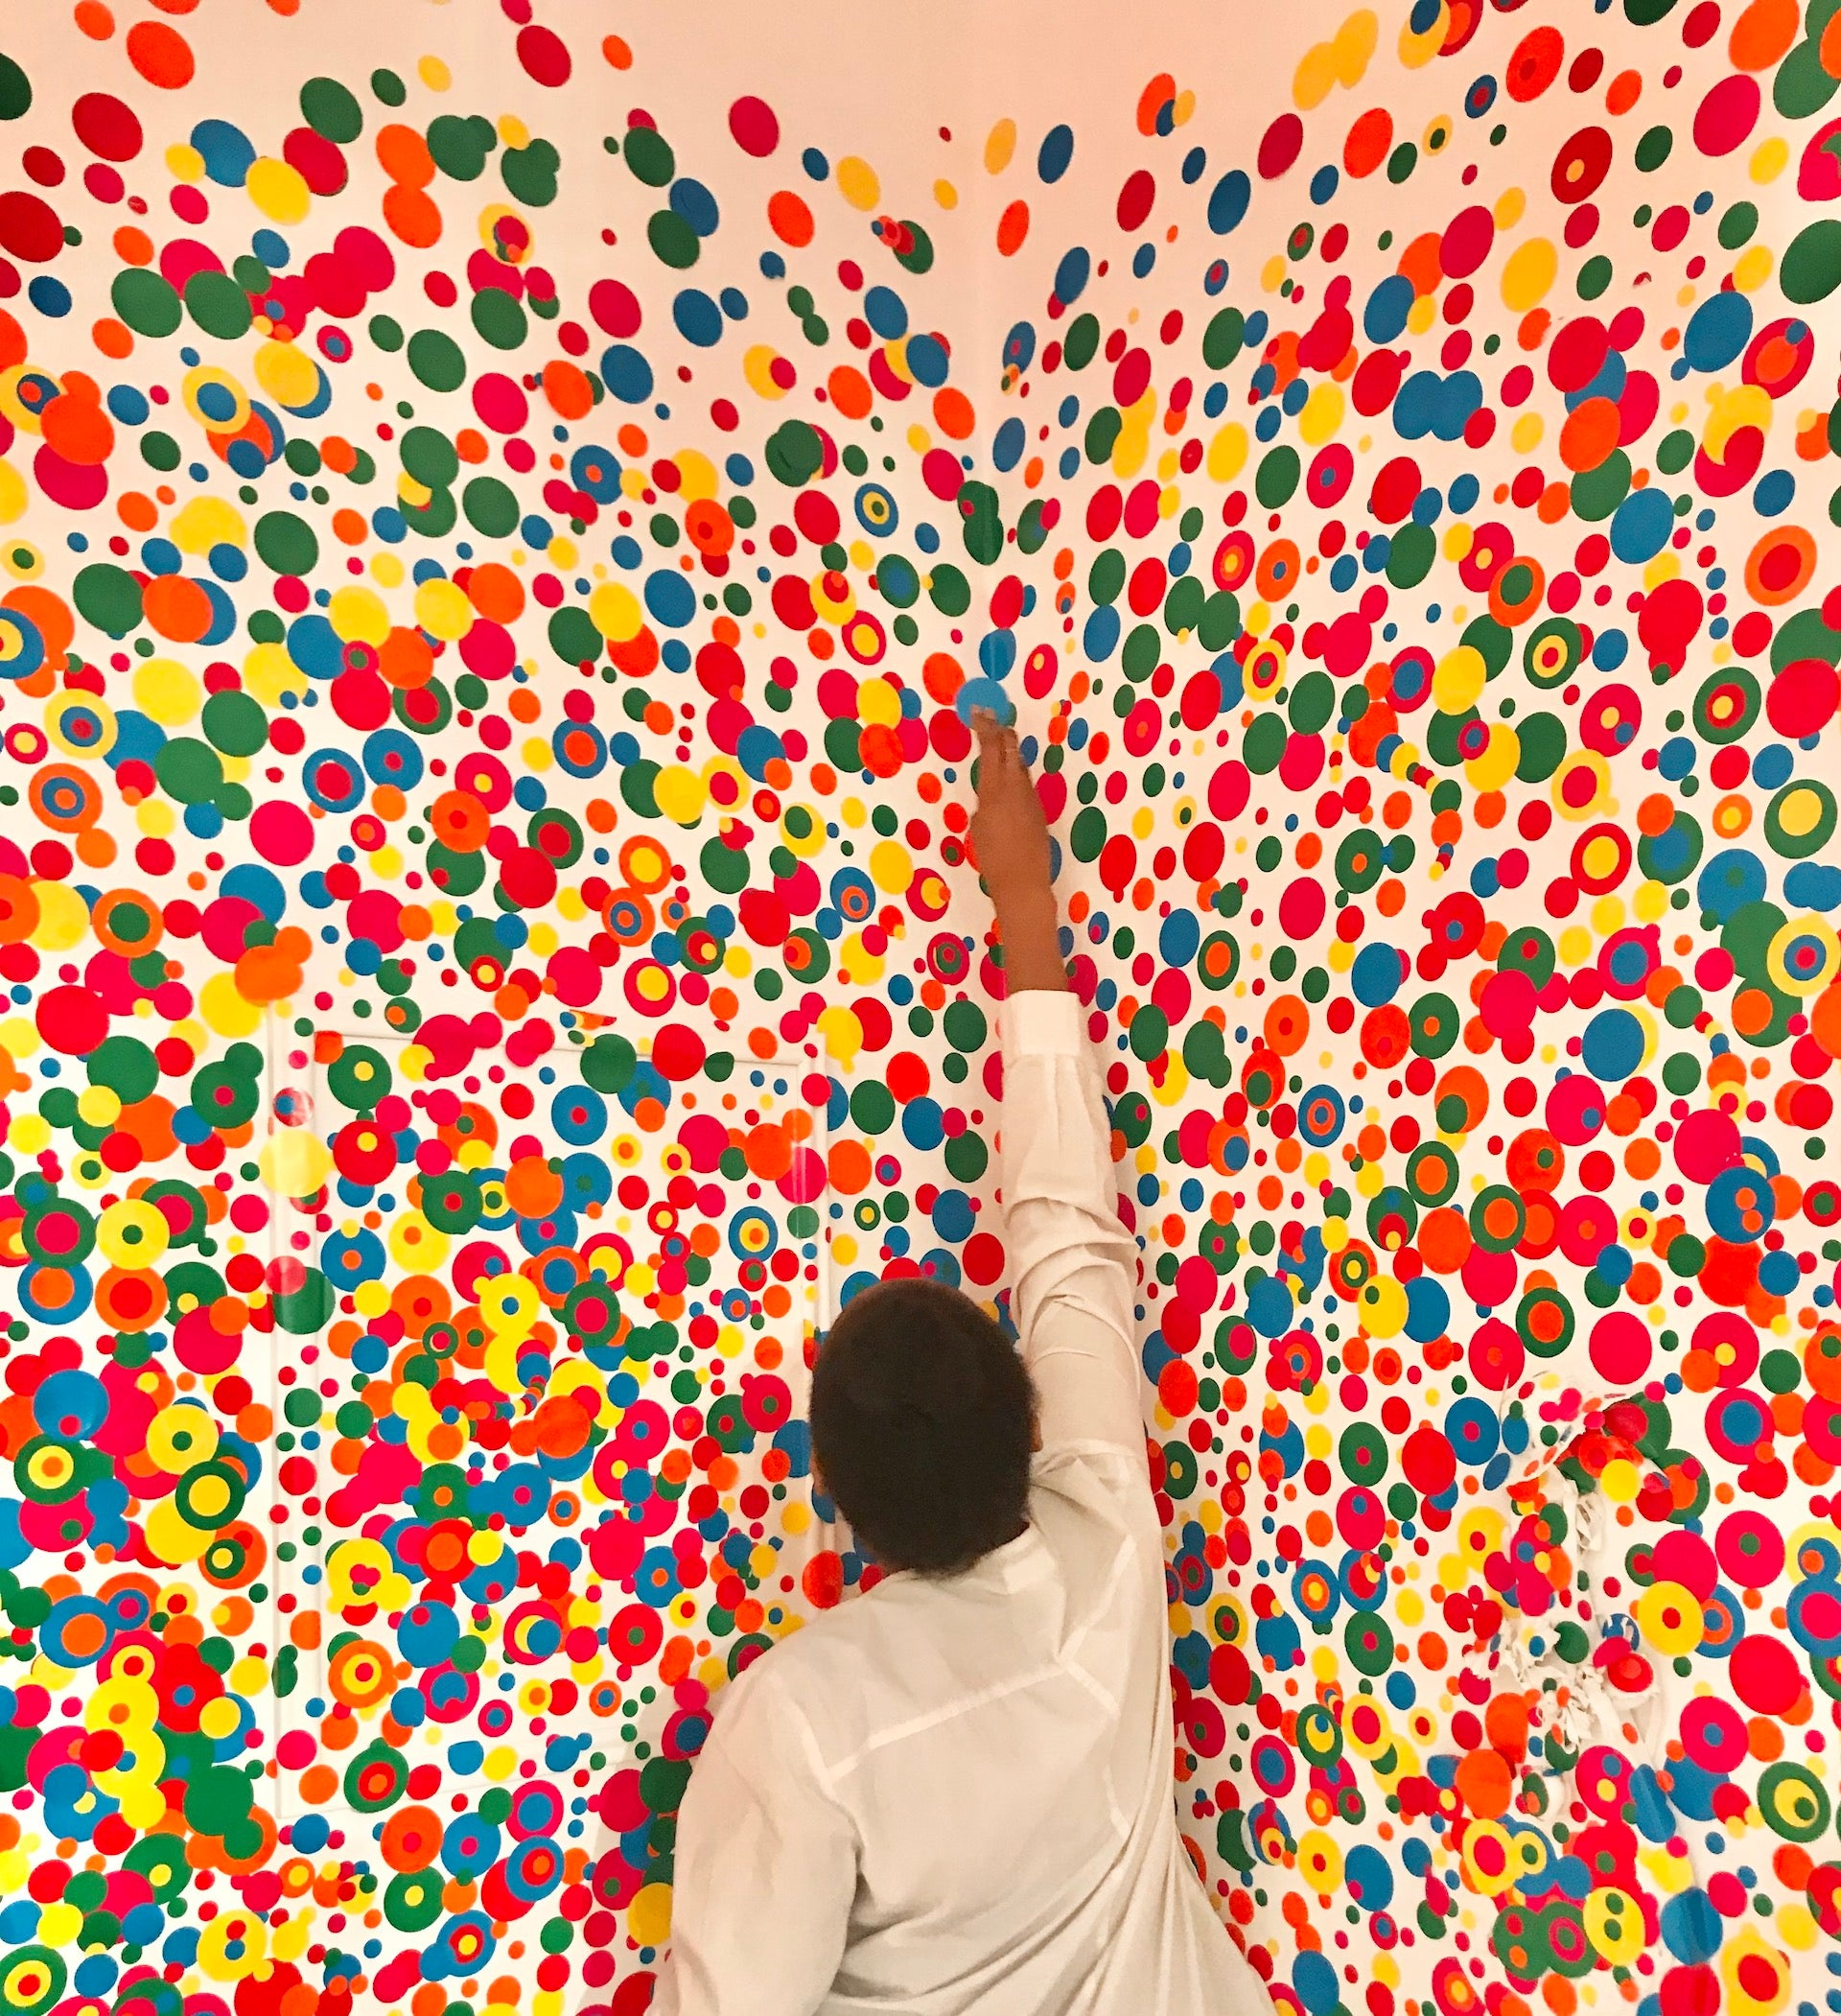 """""""To my mind, design is colorful, fun, layered, diverse, and playful,"""" Nomsa Moya notes. """"There's room for everyone to express themselves in the best way they know how.""""  Installation view of The Obliteration Room by Yayoi Kusama at the Art Gallery of Ontario, 2018.  Photo © Nicole Nomsa Moyo"""